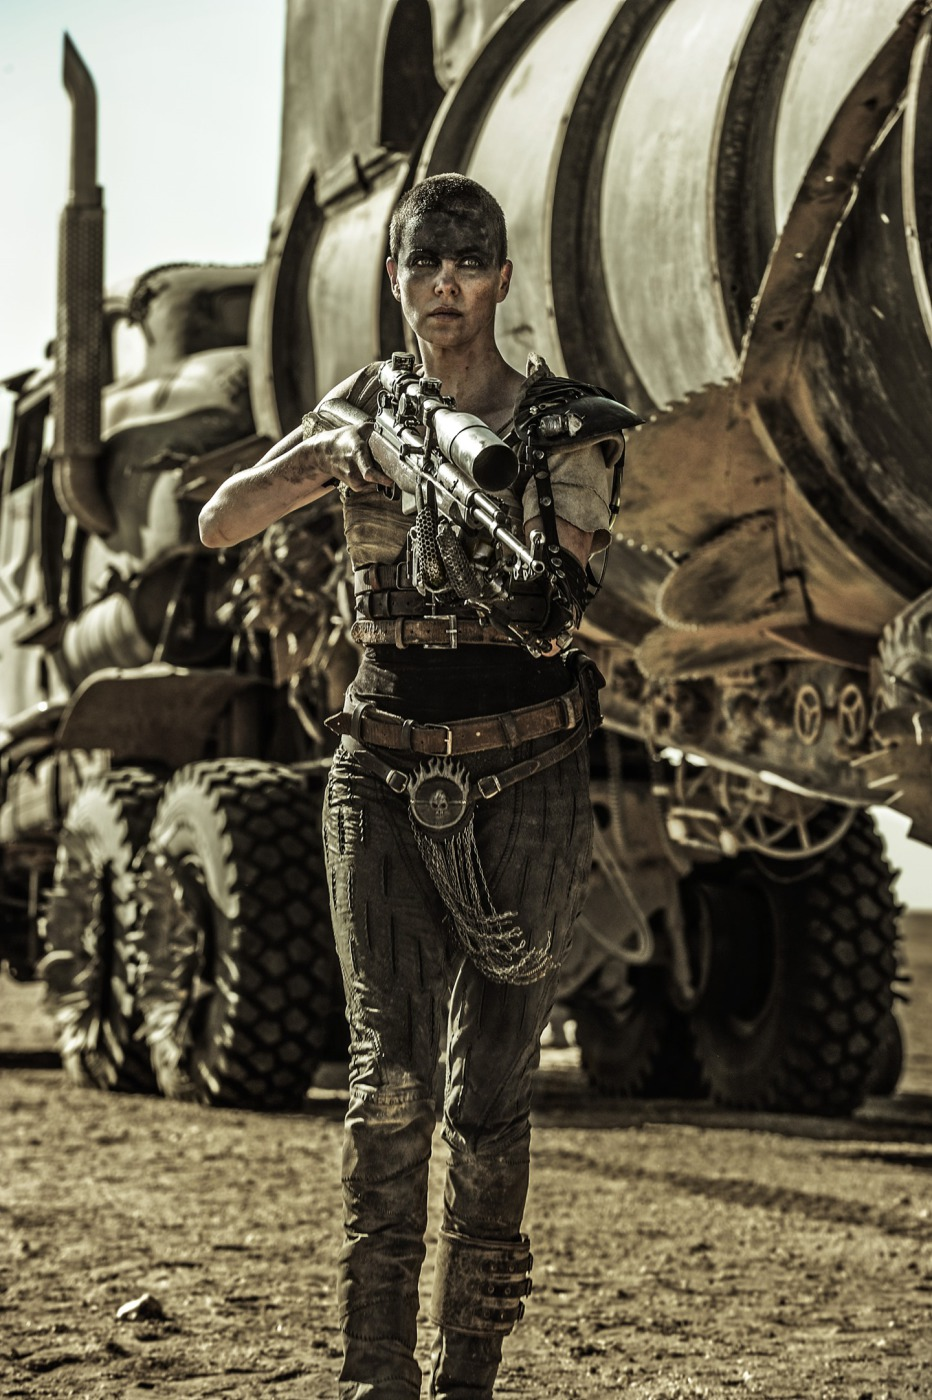 mad-max-fury-road-2015-George-Miller-023.jpg